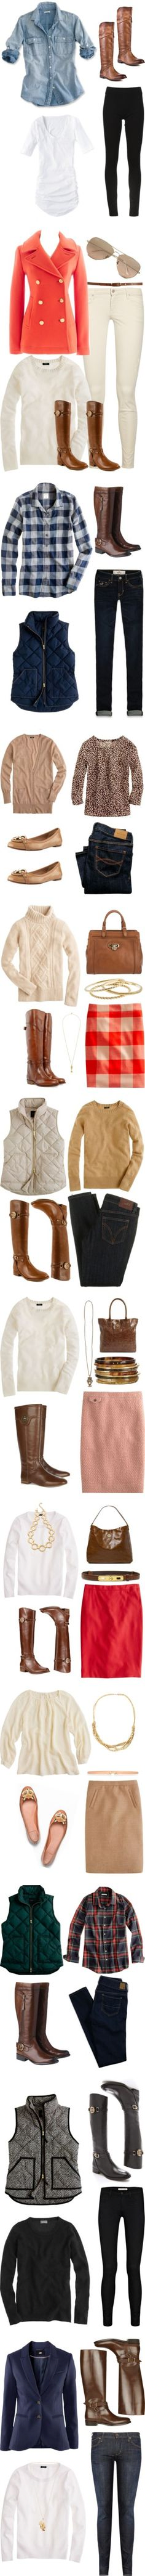 The best pieces for your perfect fall wardrobe!! cuteeeee